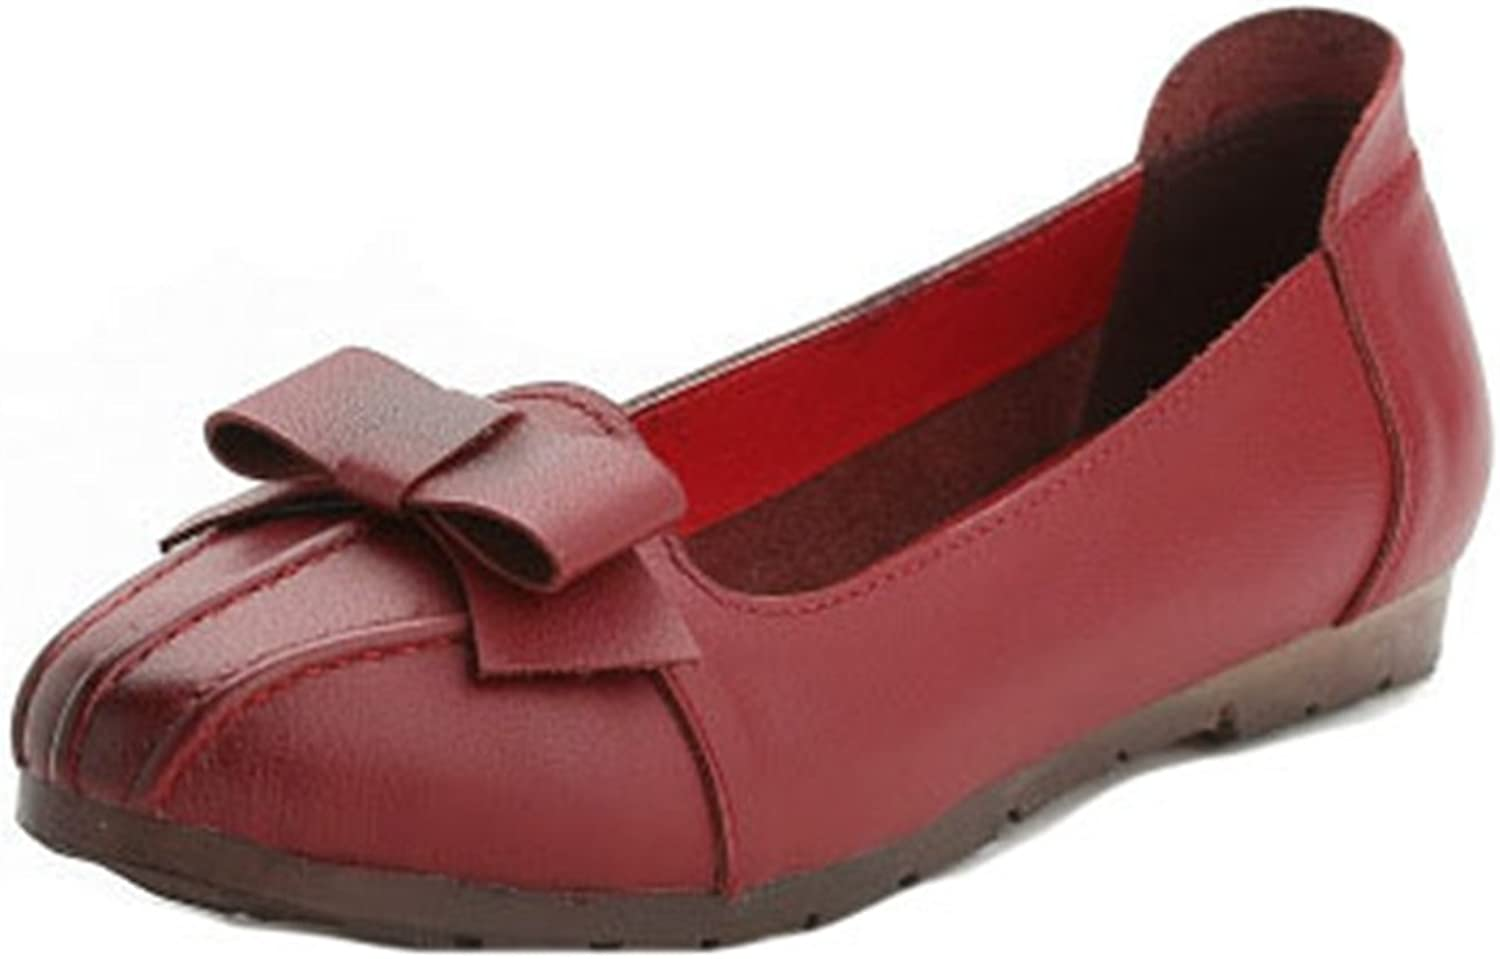 GIY Women's Classic Penny Loafer Wingtips Pointed Toe Comfort Flats Slip On Bowknot Dress Loafers shoes